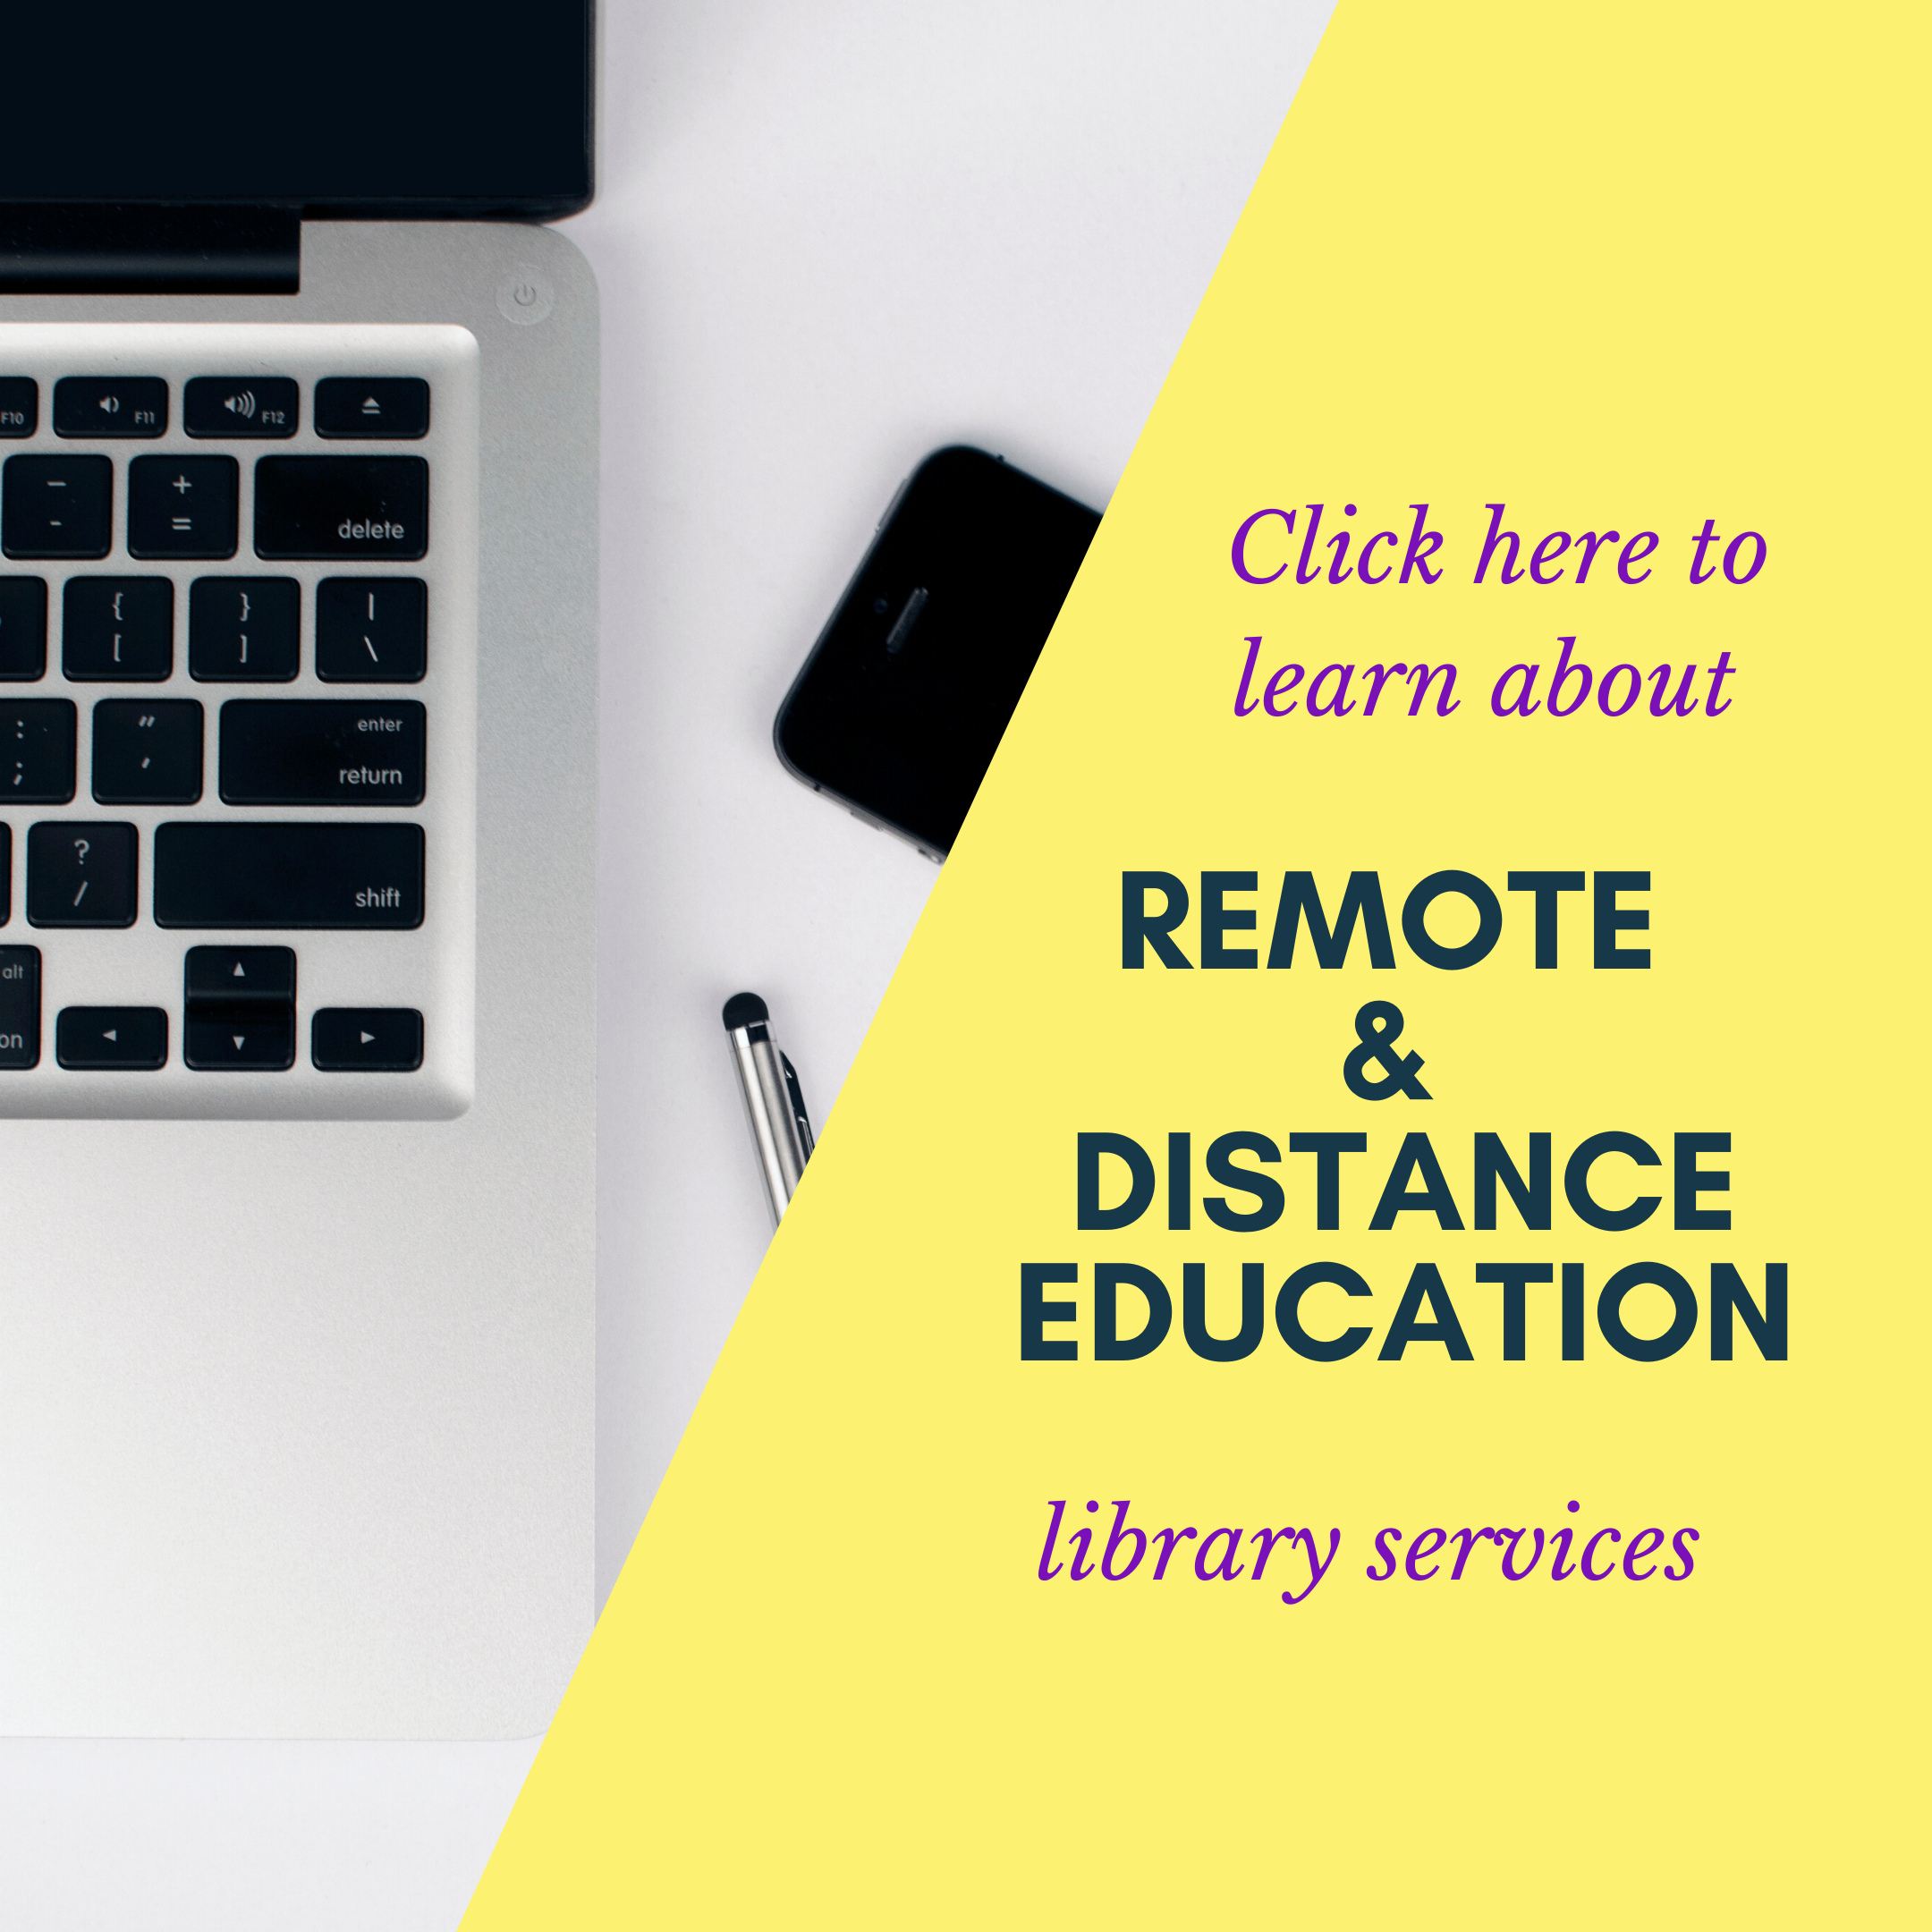 Learn more about remote and distance education library services